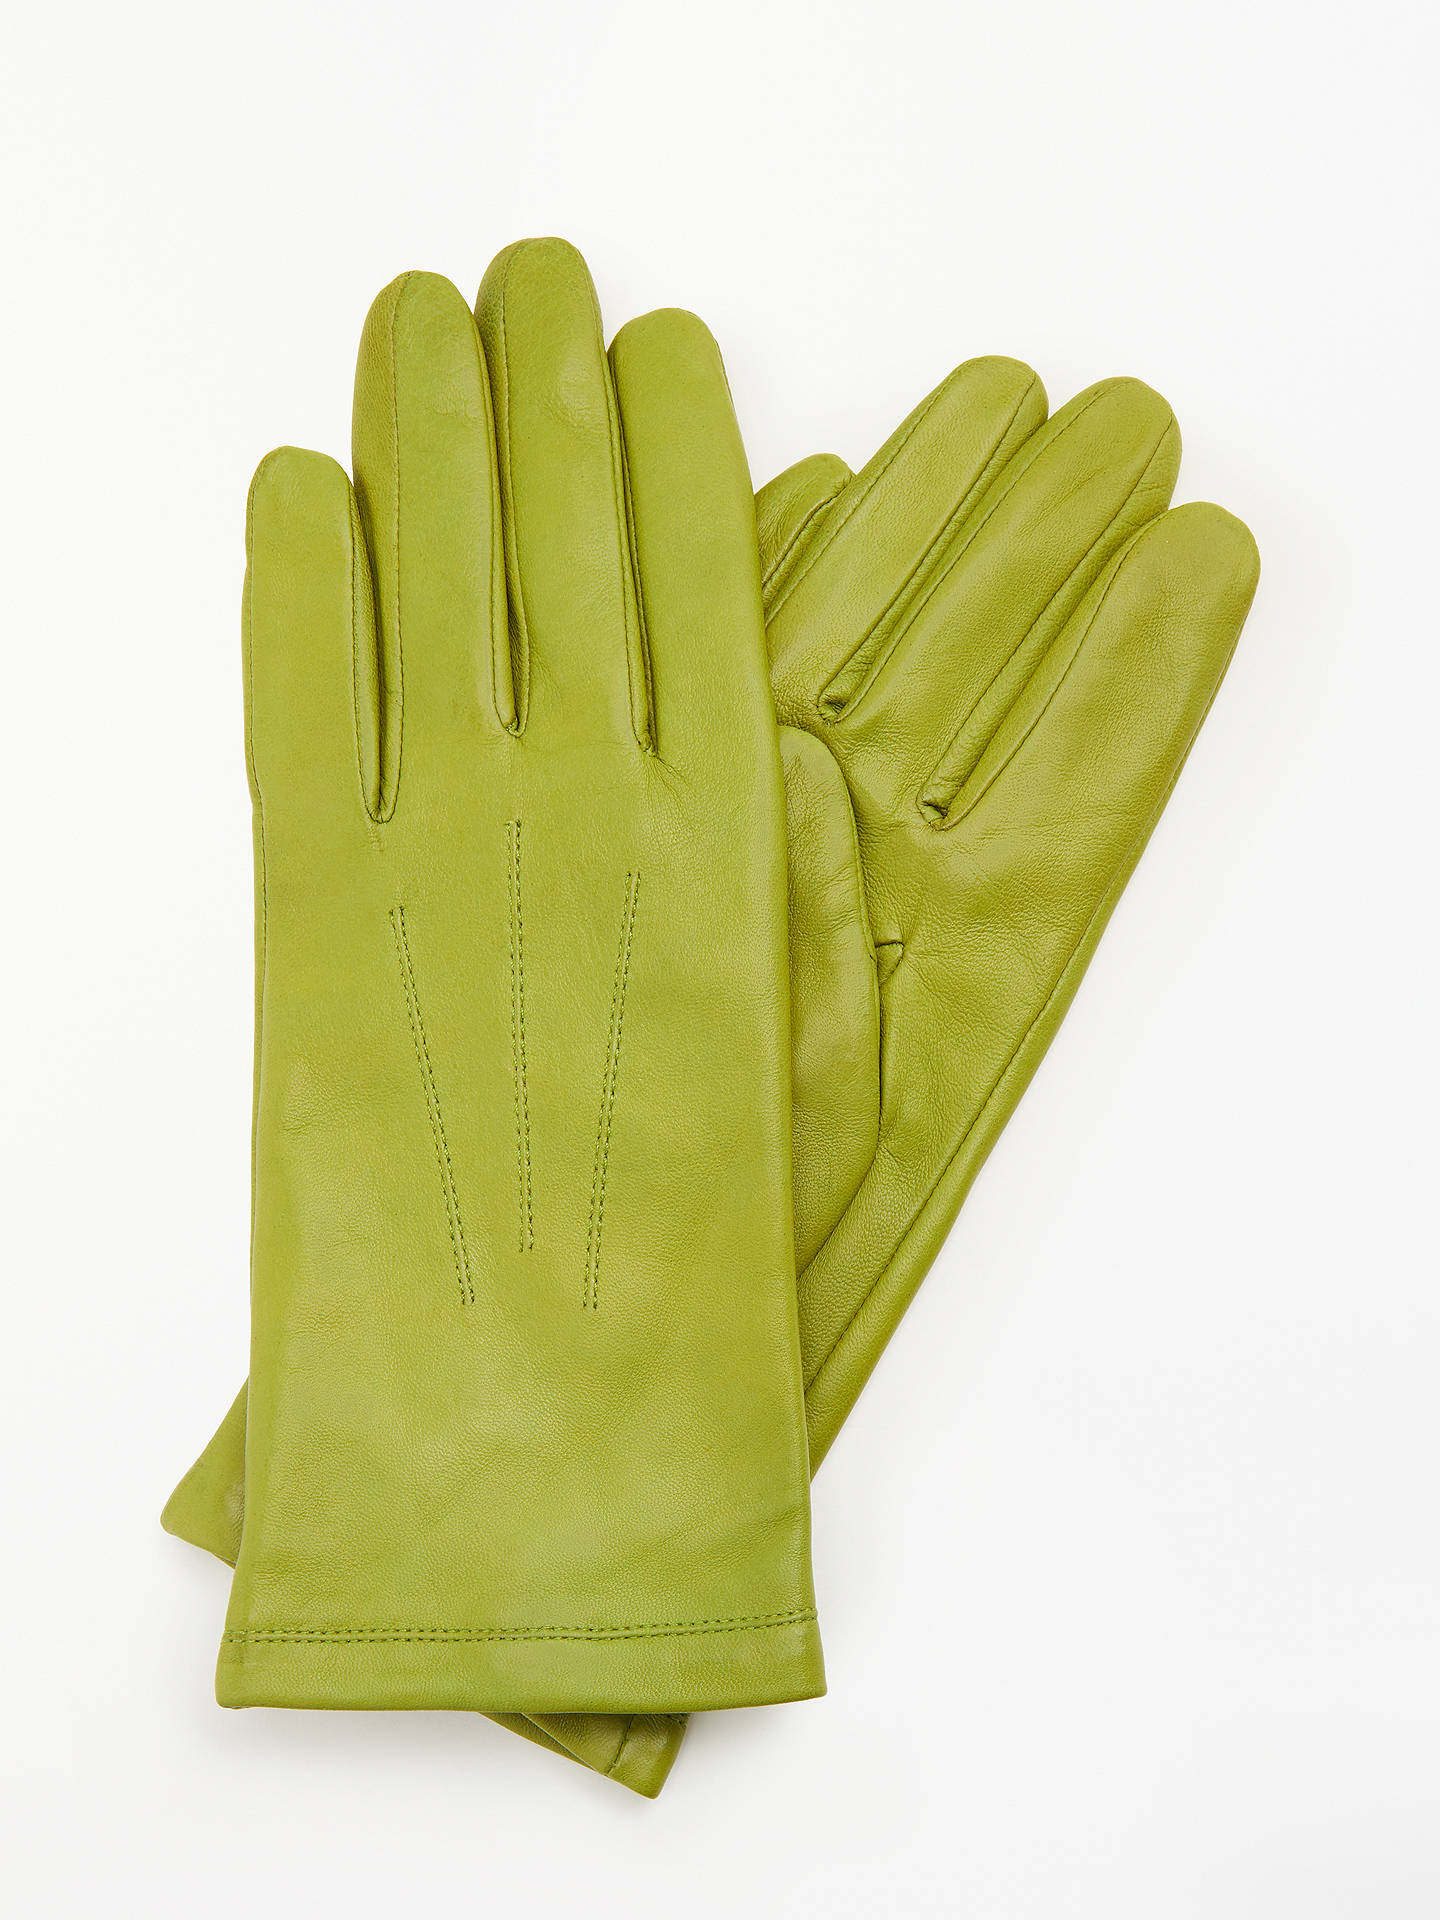 BuyJohn Lewis & Partners Leather Fleece Lined Gloves, Lime, S Online at johnlewis.com